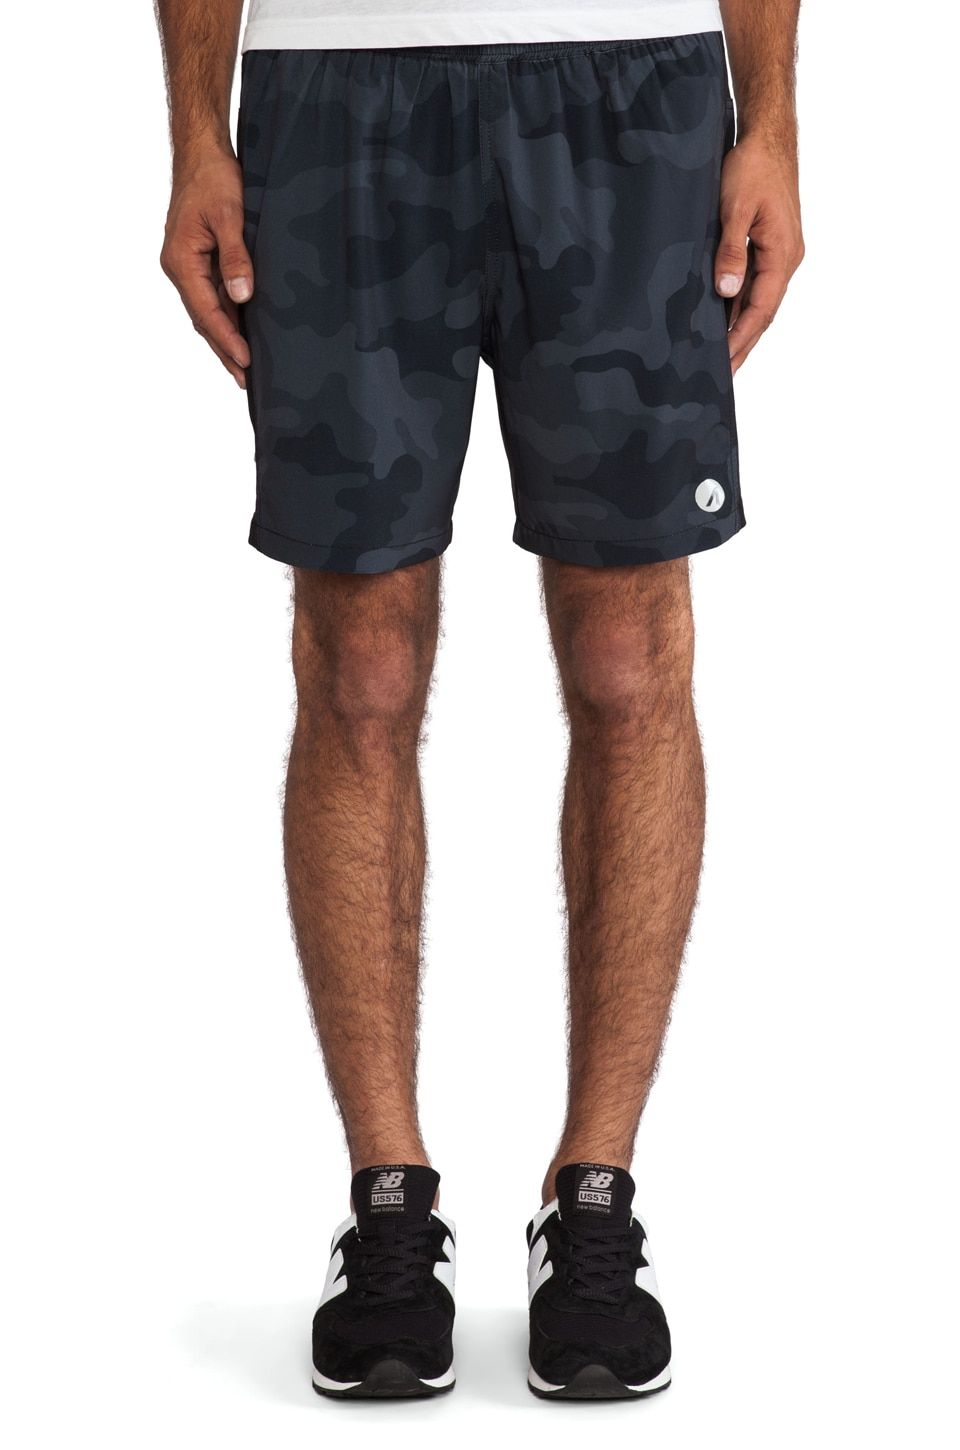 Athletic Recon Sidewinder Short in Black Camo